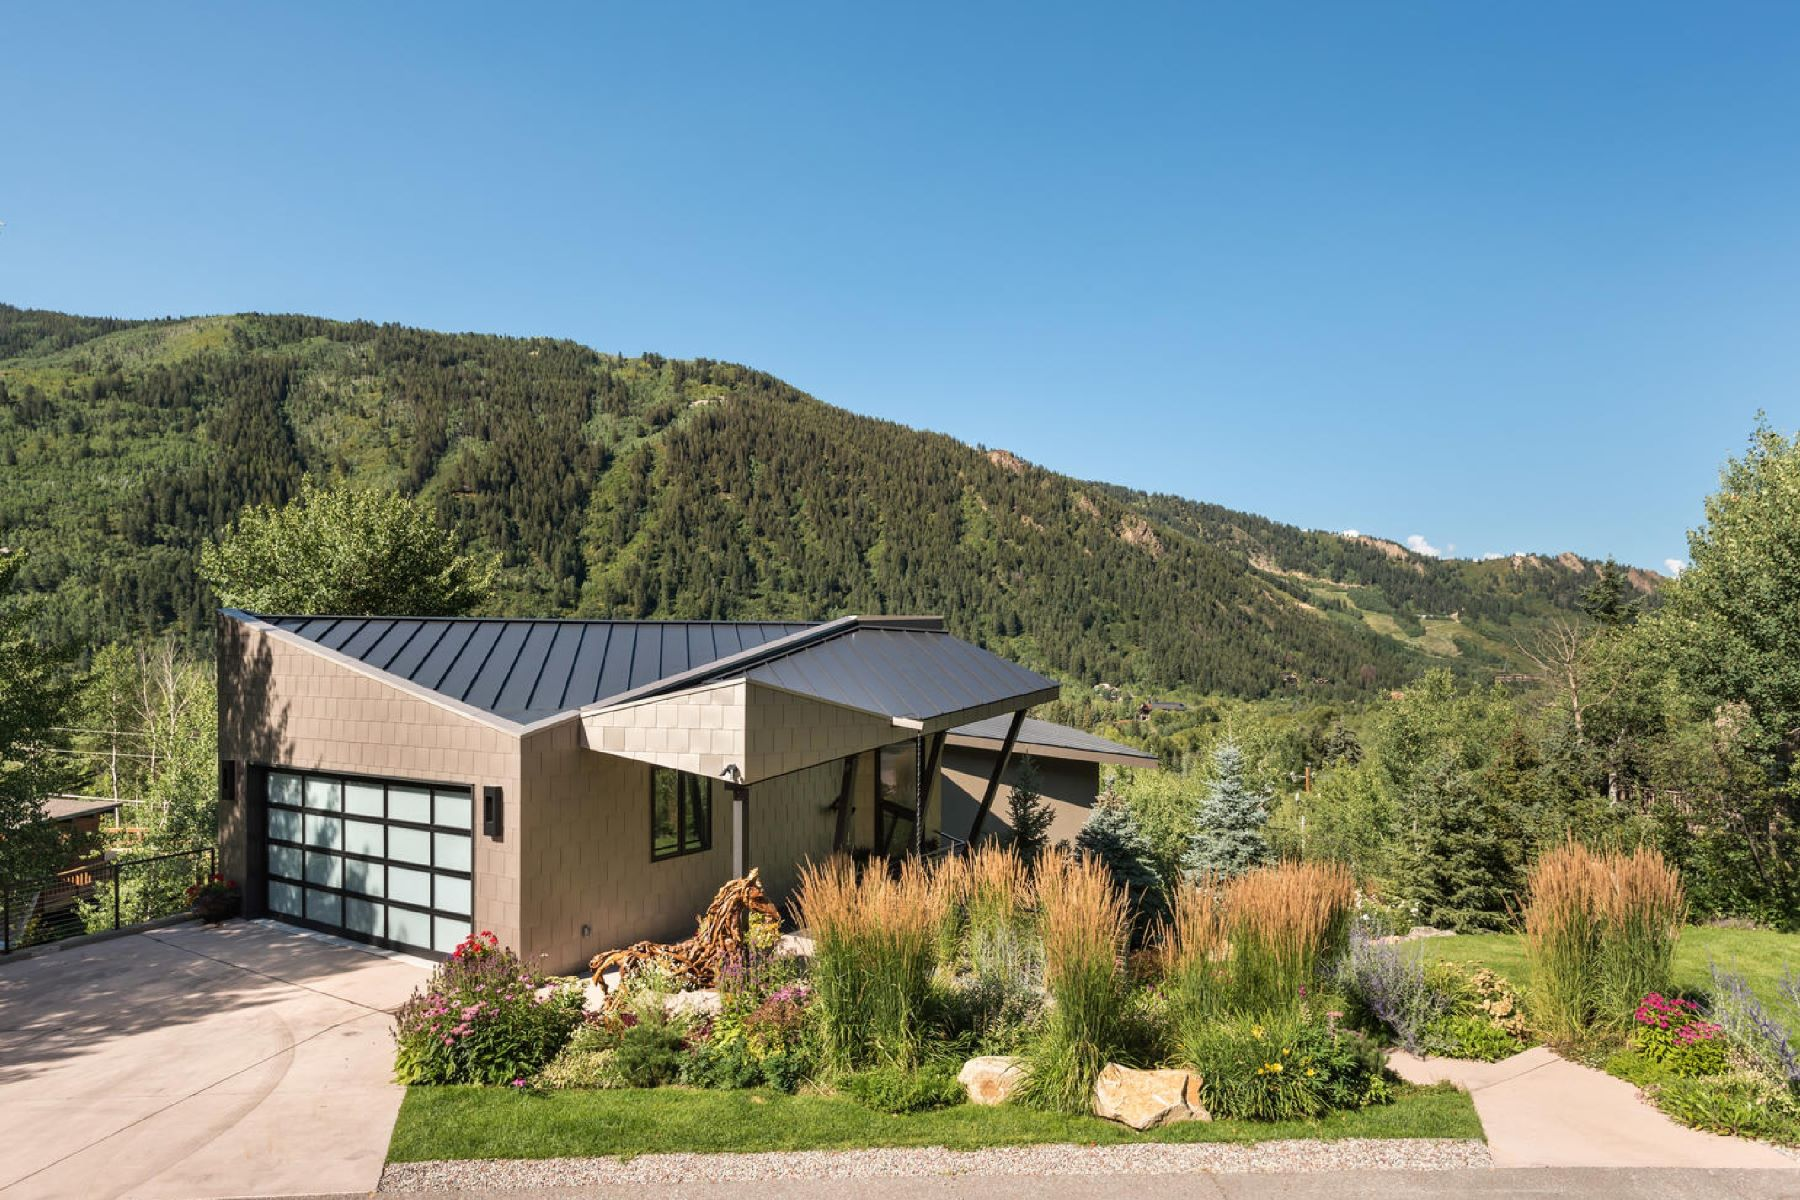 Single Family Home for Sale at Mountain Valley 257 Mountain Laurel Drive, Aspen, Colorado, 81611 United States